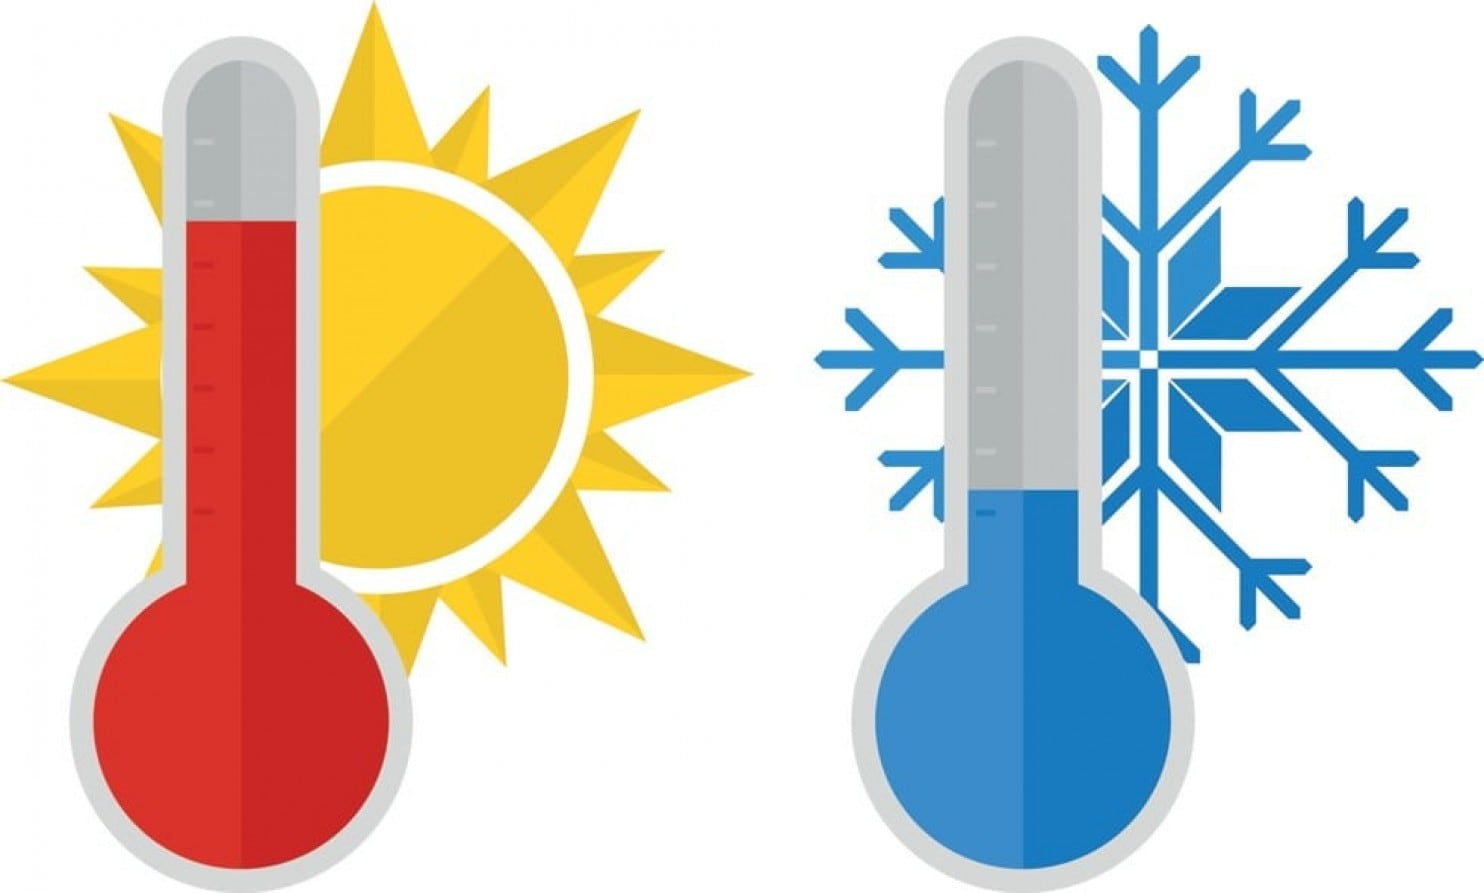 image royalty free download Free download best . Temperature clipart